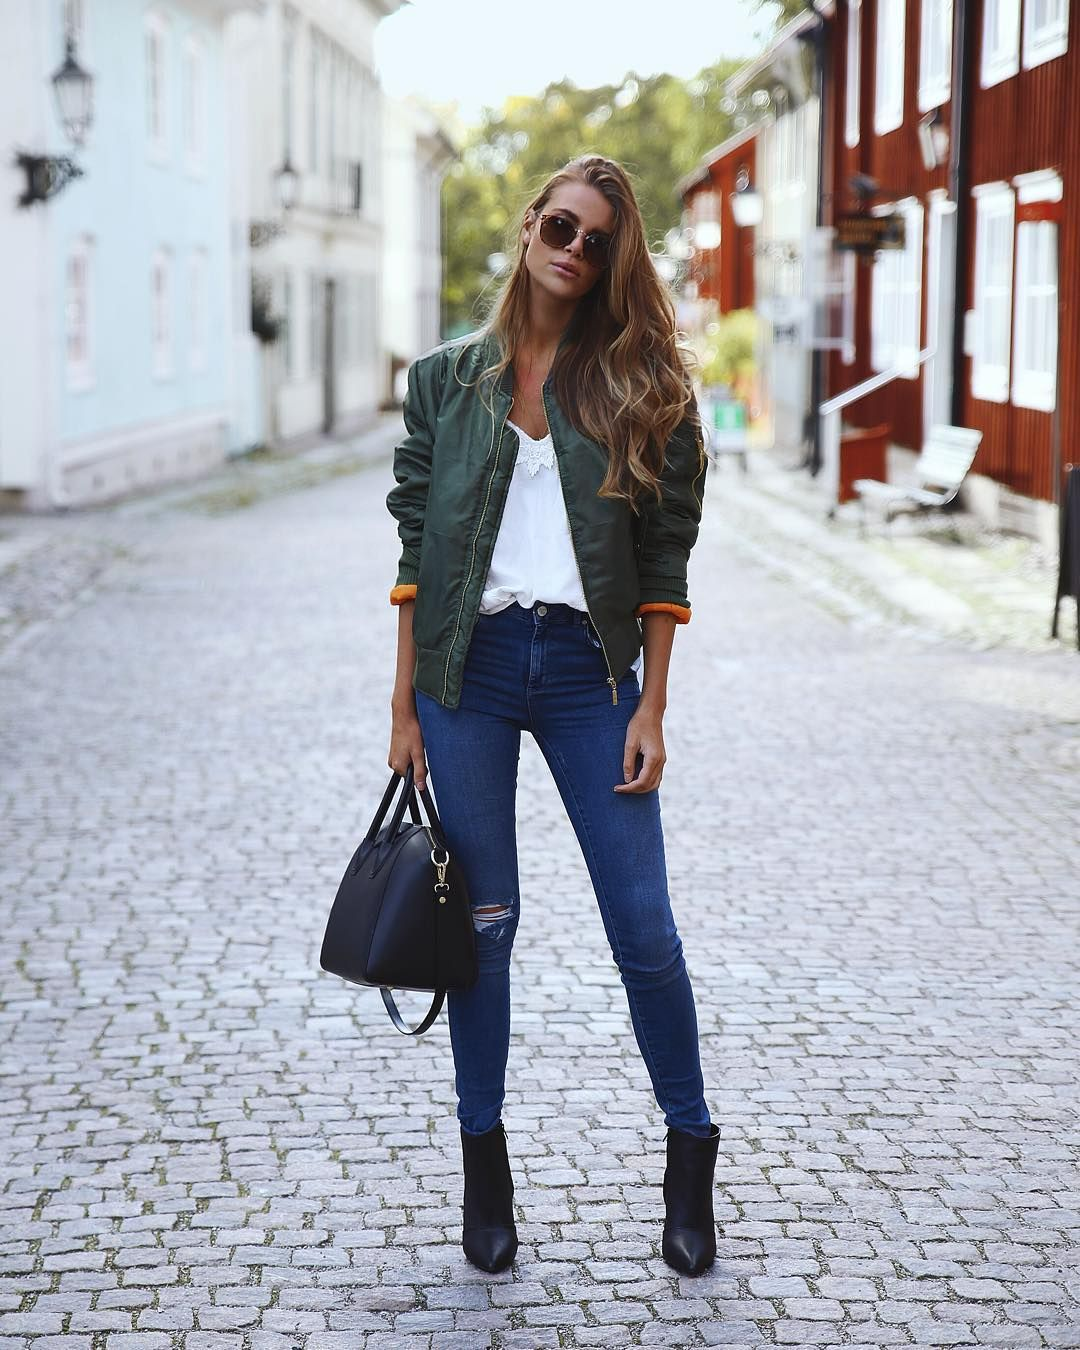 a454df992b7 Green bomber jacket + white t-shirt + ripped jeans + black ankle boots +  black bowling bag   badass street style this fall and winter.